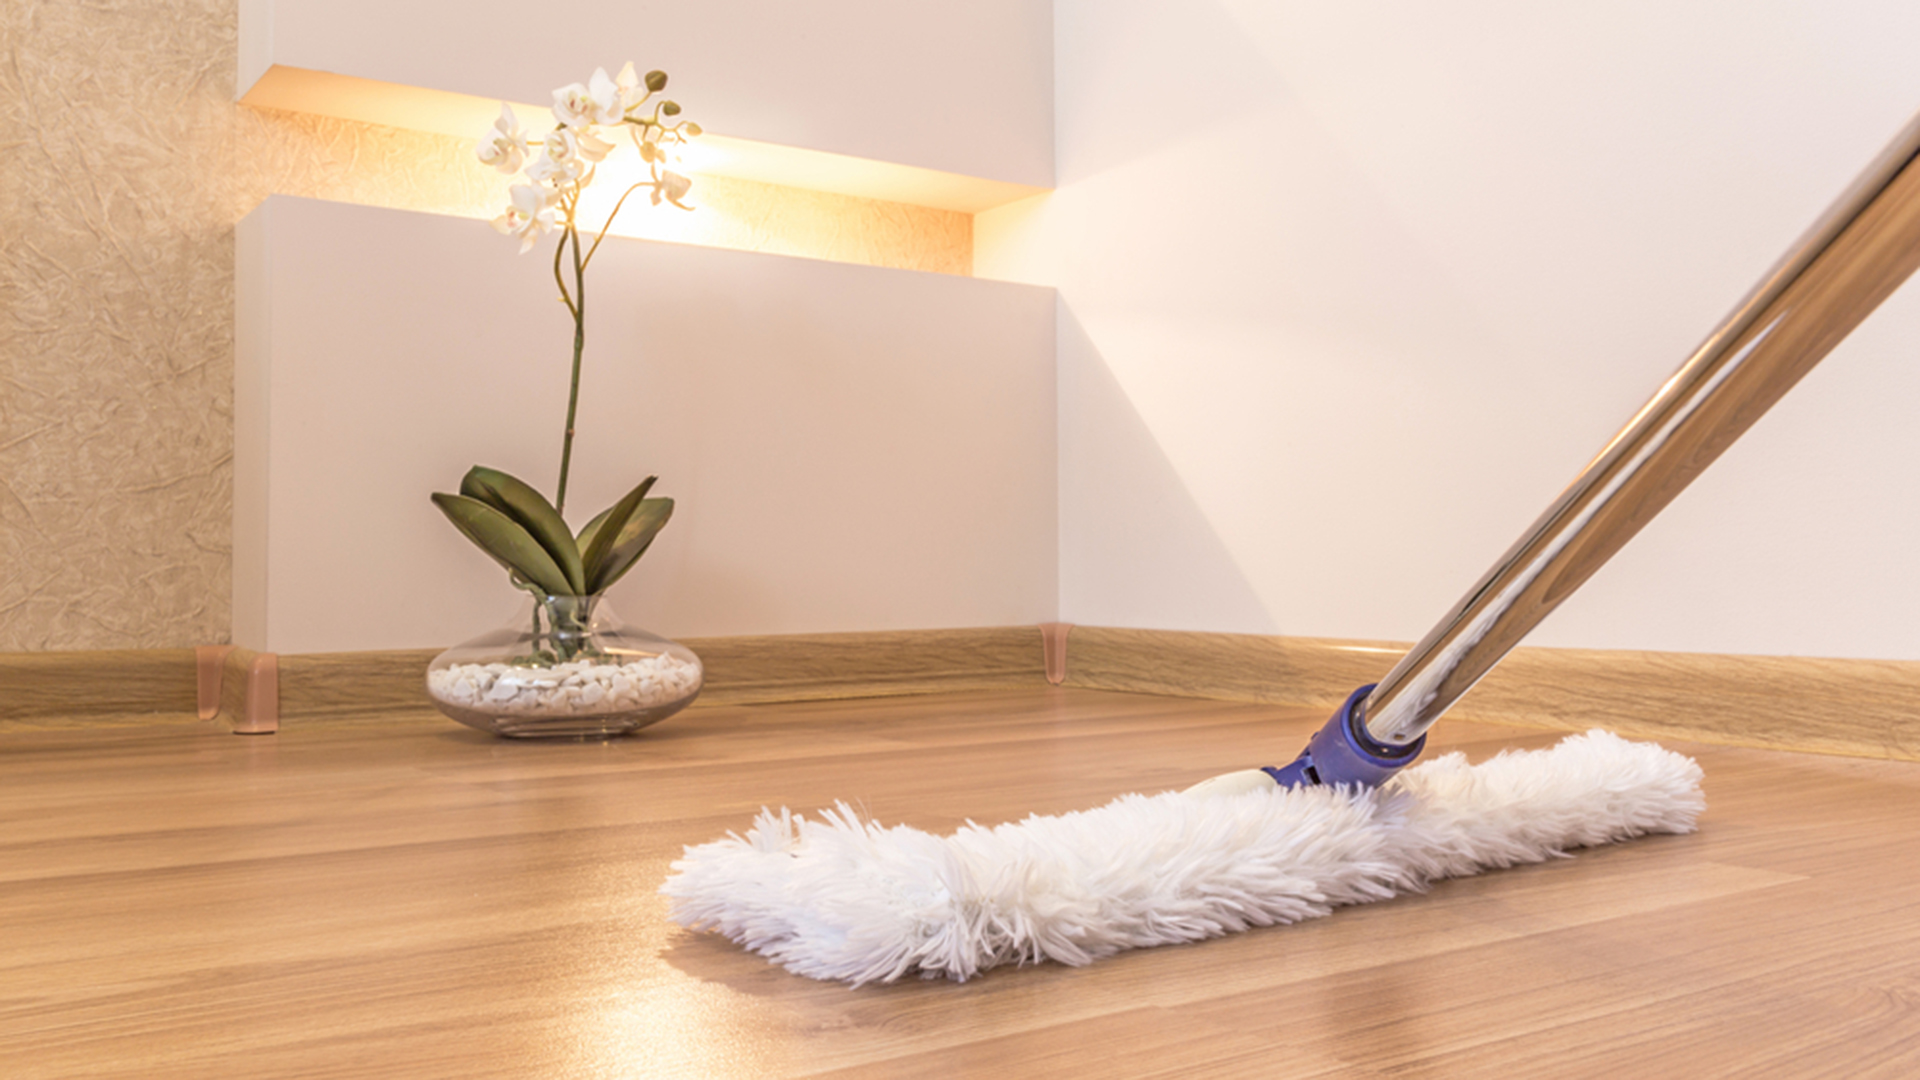 HOW TO CLEAN AND MAINTAIN PVC FLOORING